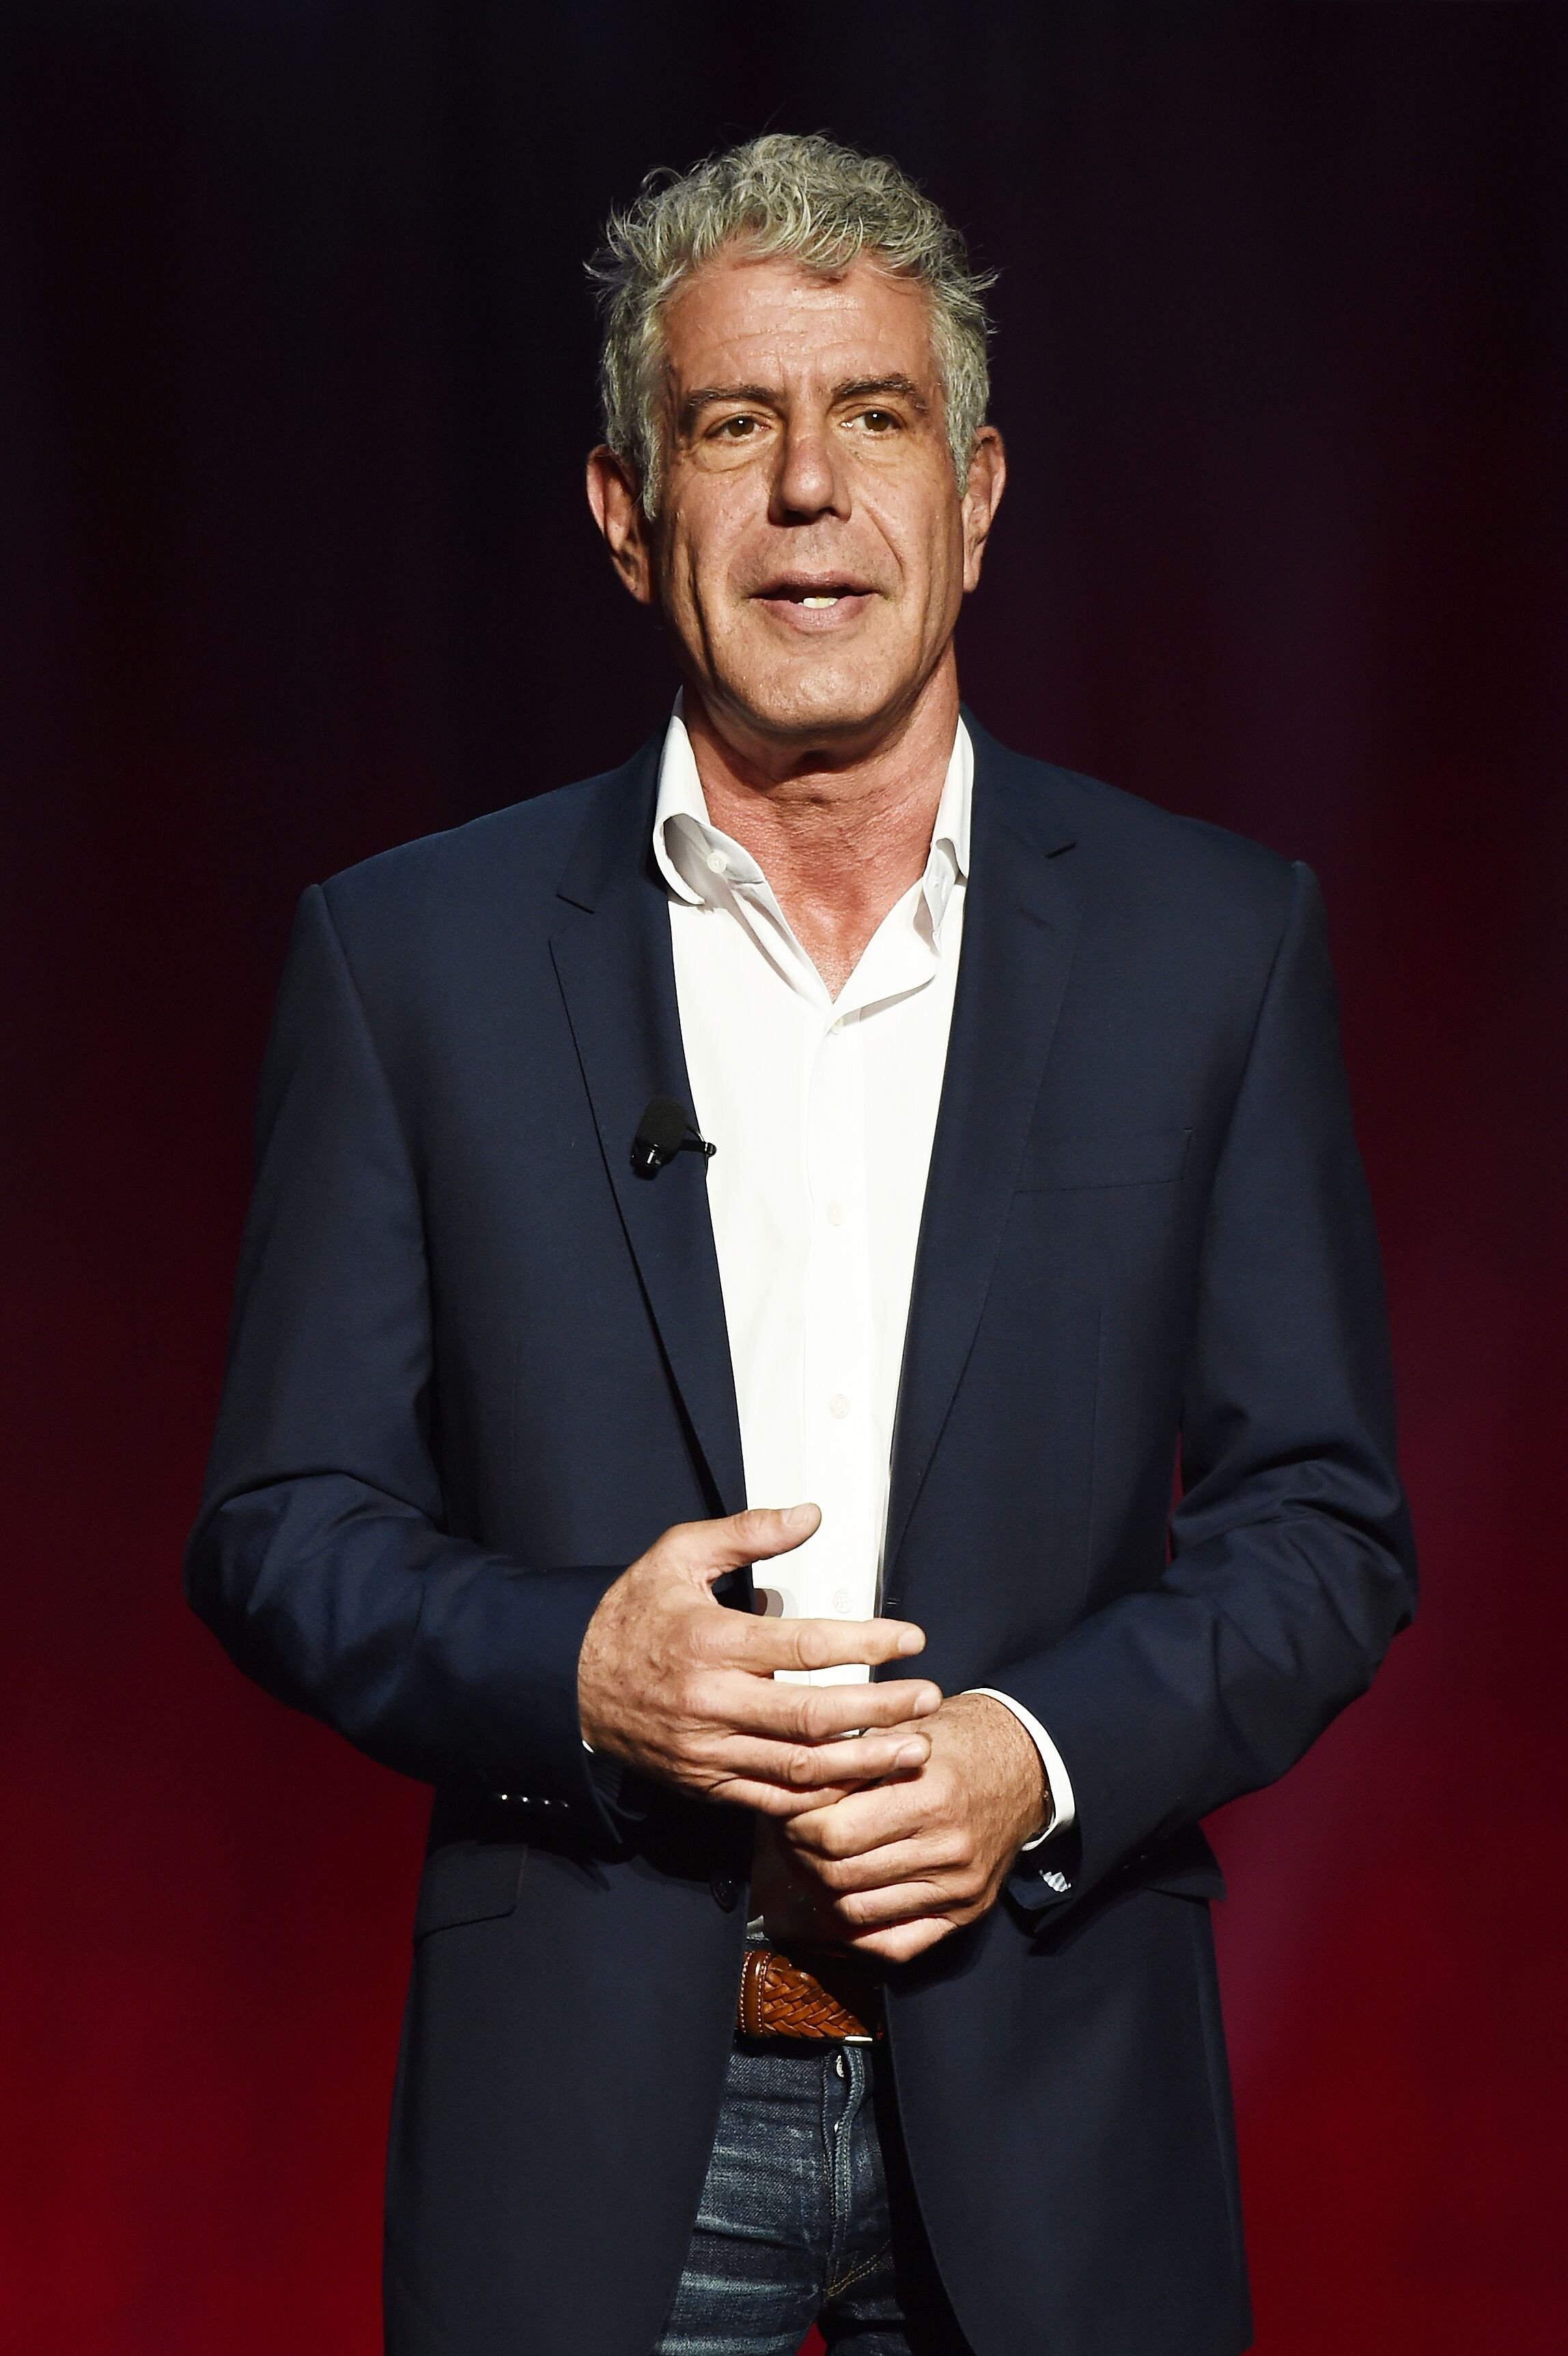 Chef Anthony Bourdain speaks on stage during the Turner Upfront 2016 show at The Theater at Madison Square Garden on May 18, 2016 in New York City | Photo: Getty Images